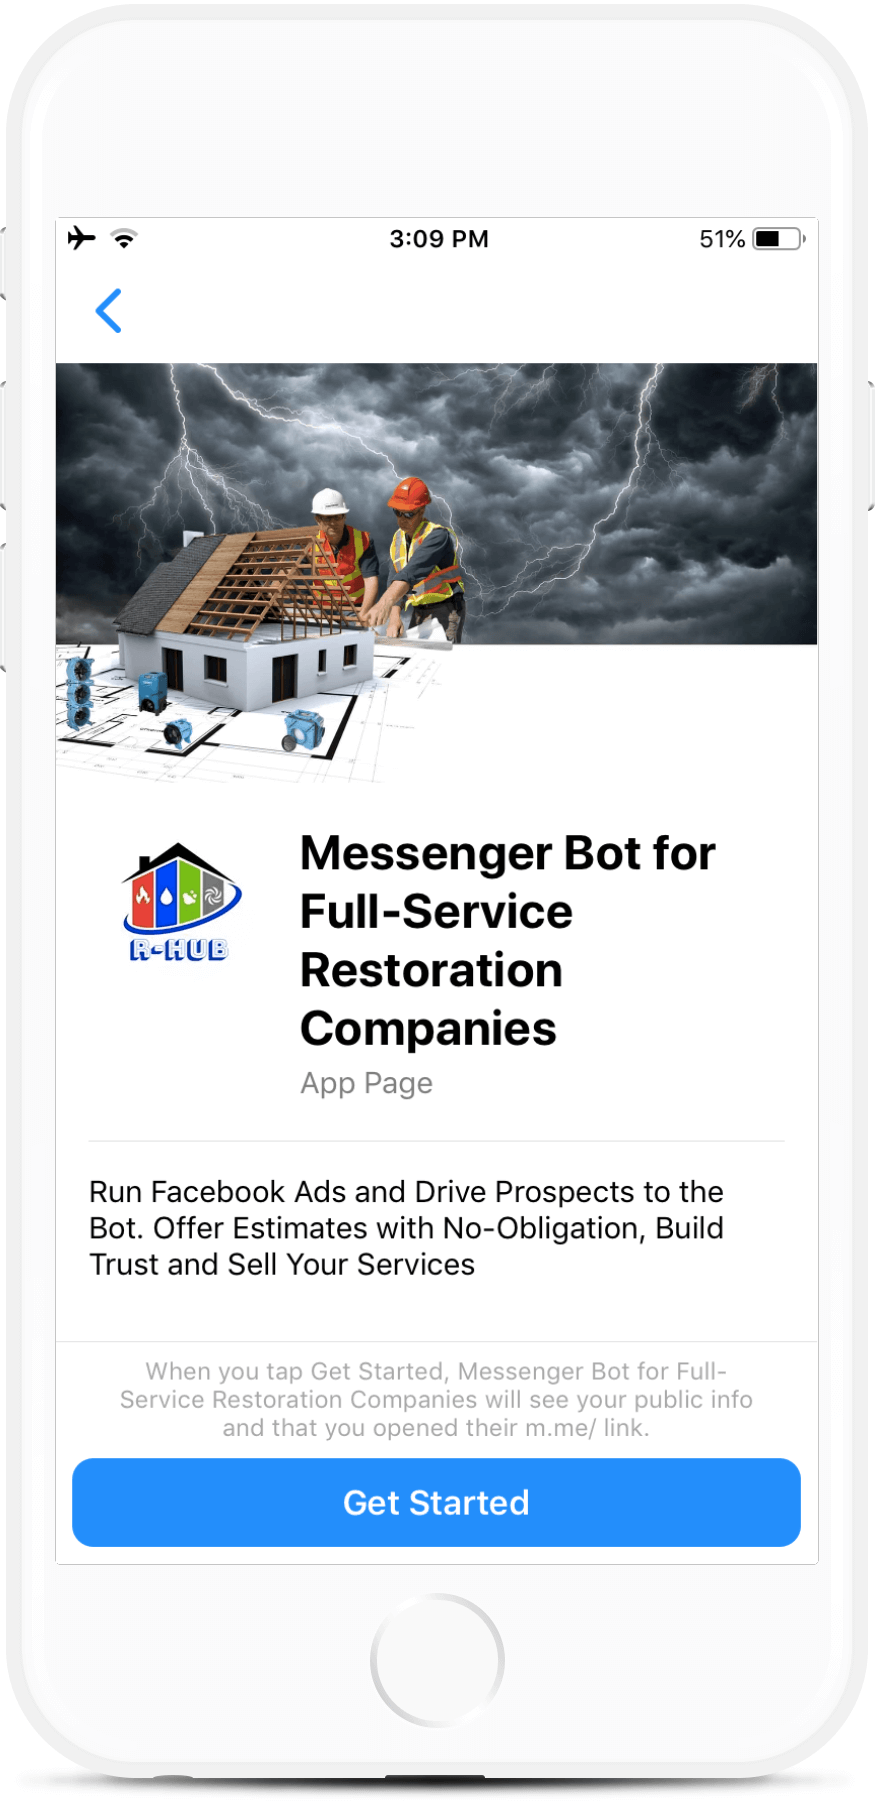 Messenger Bot for Full-Service Restoration Companies